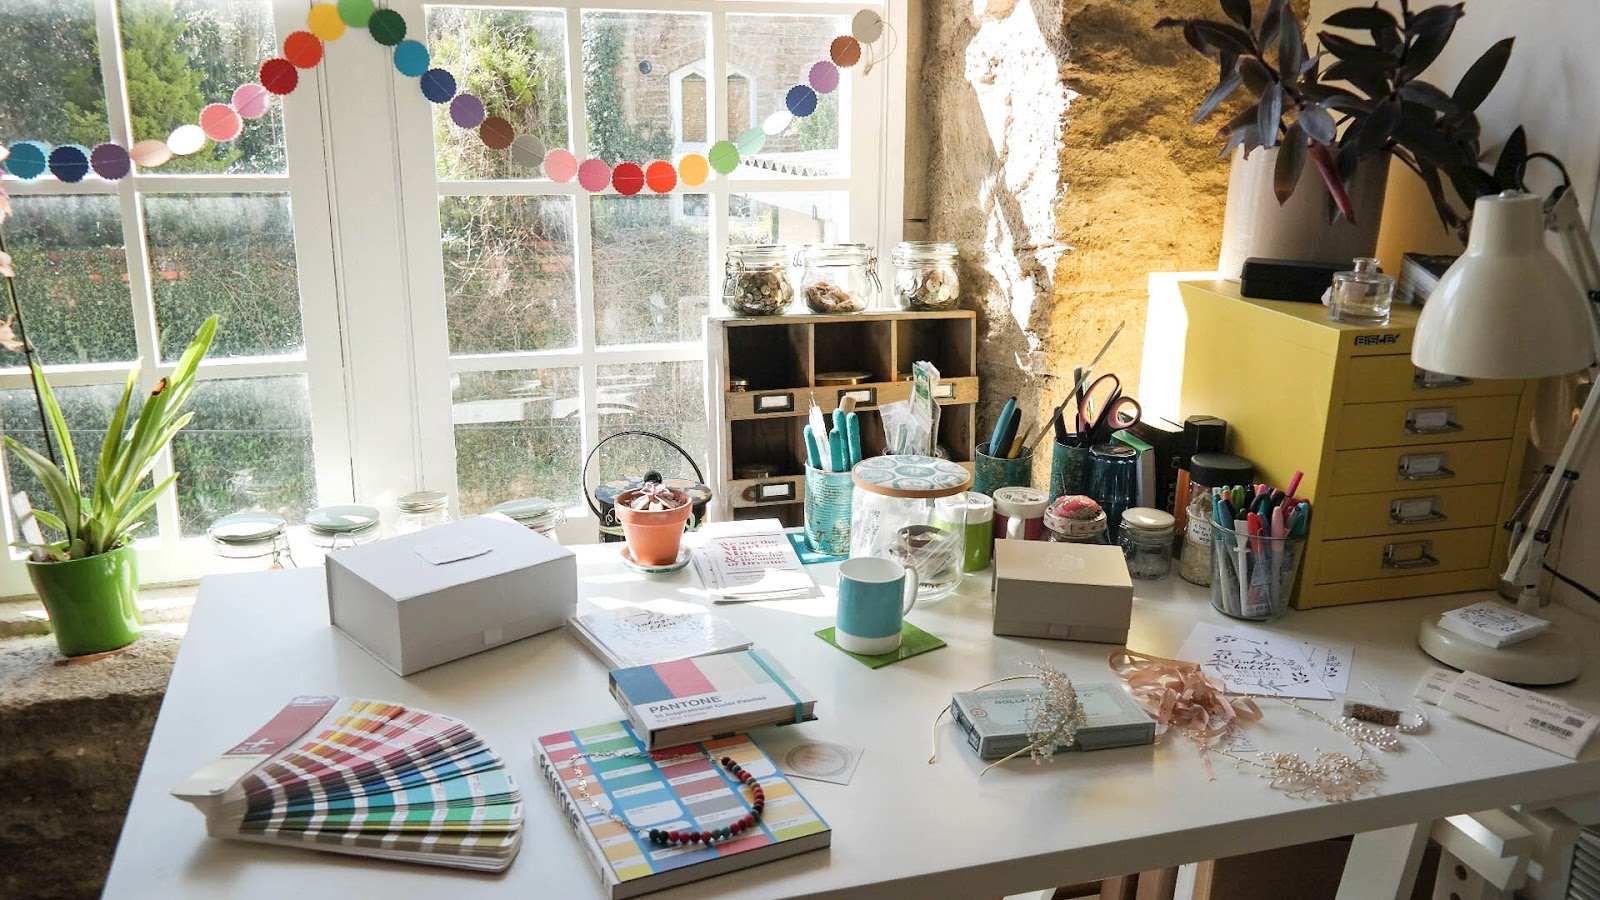 Light and colourful, Clare's studio is in The Silk Mill in Frome